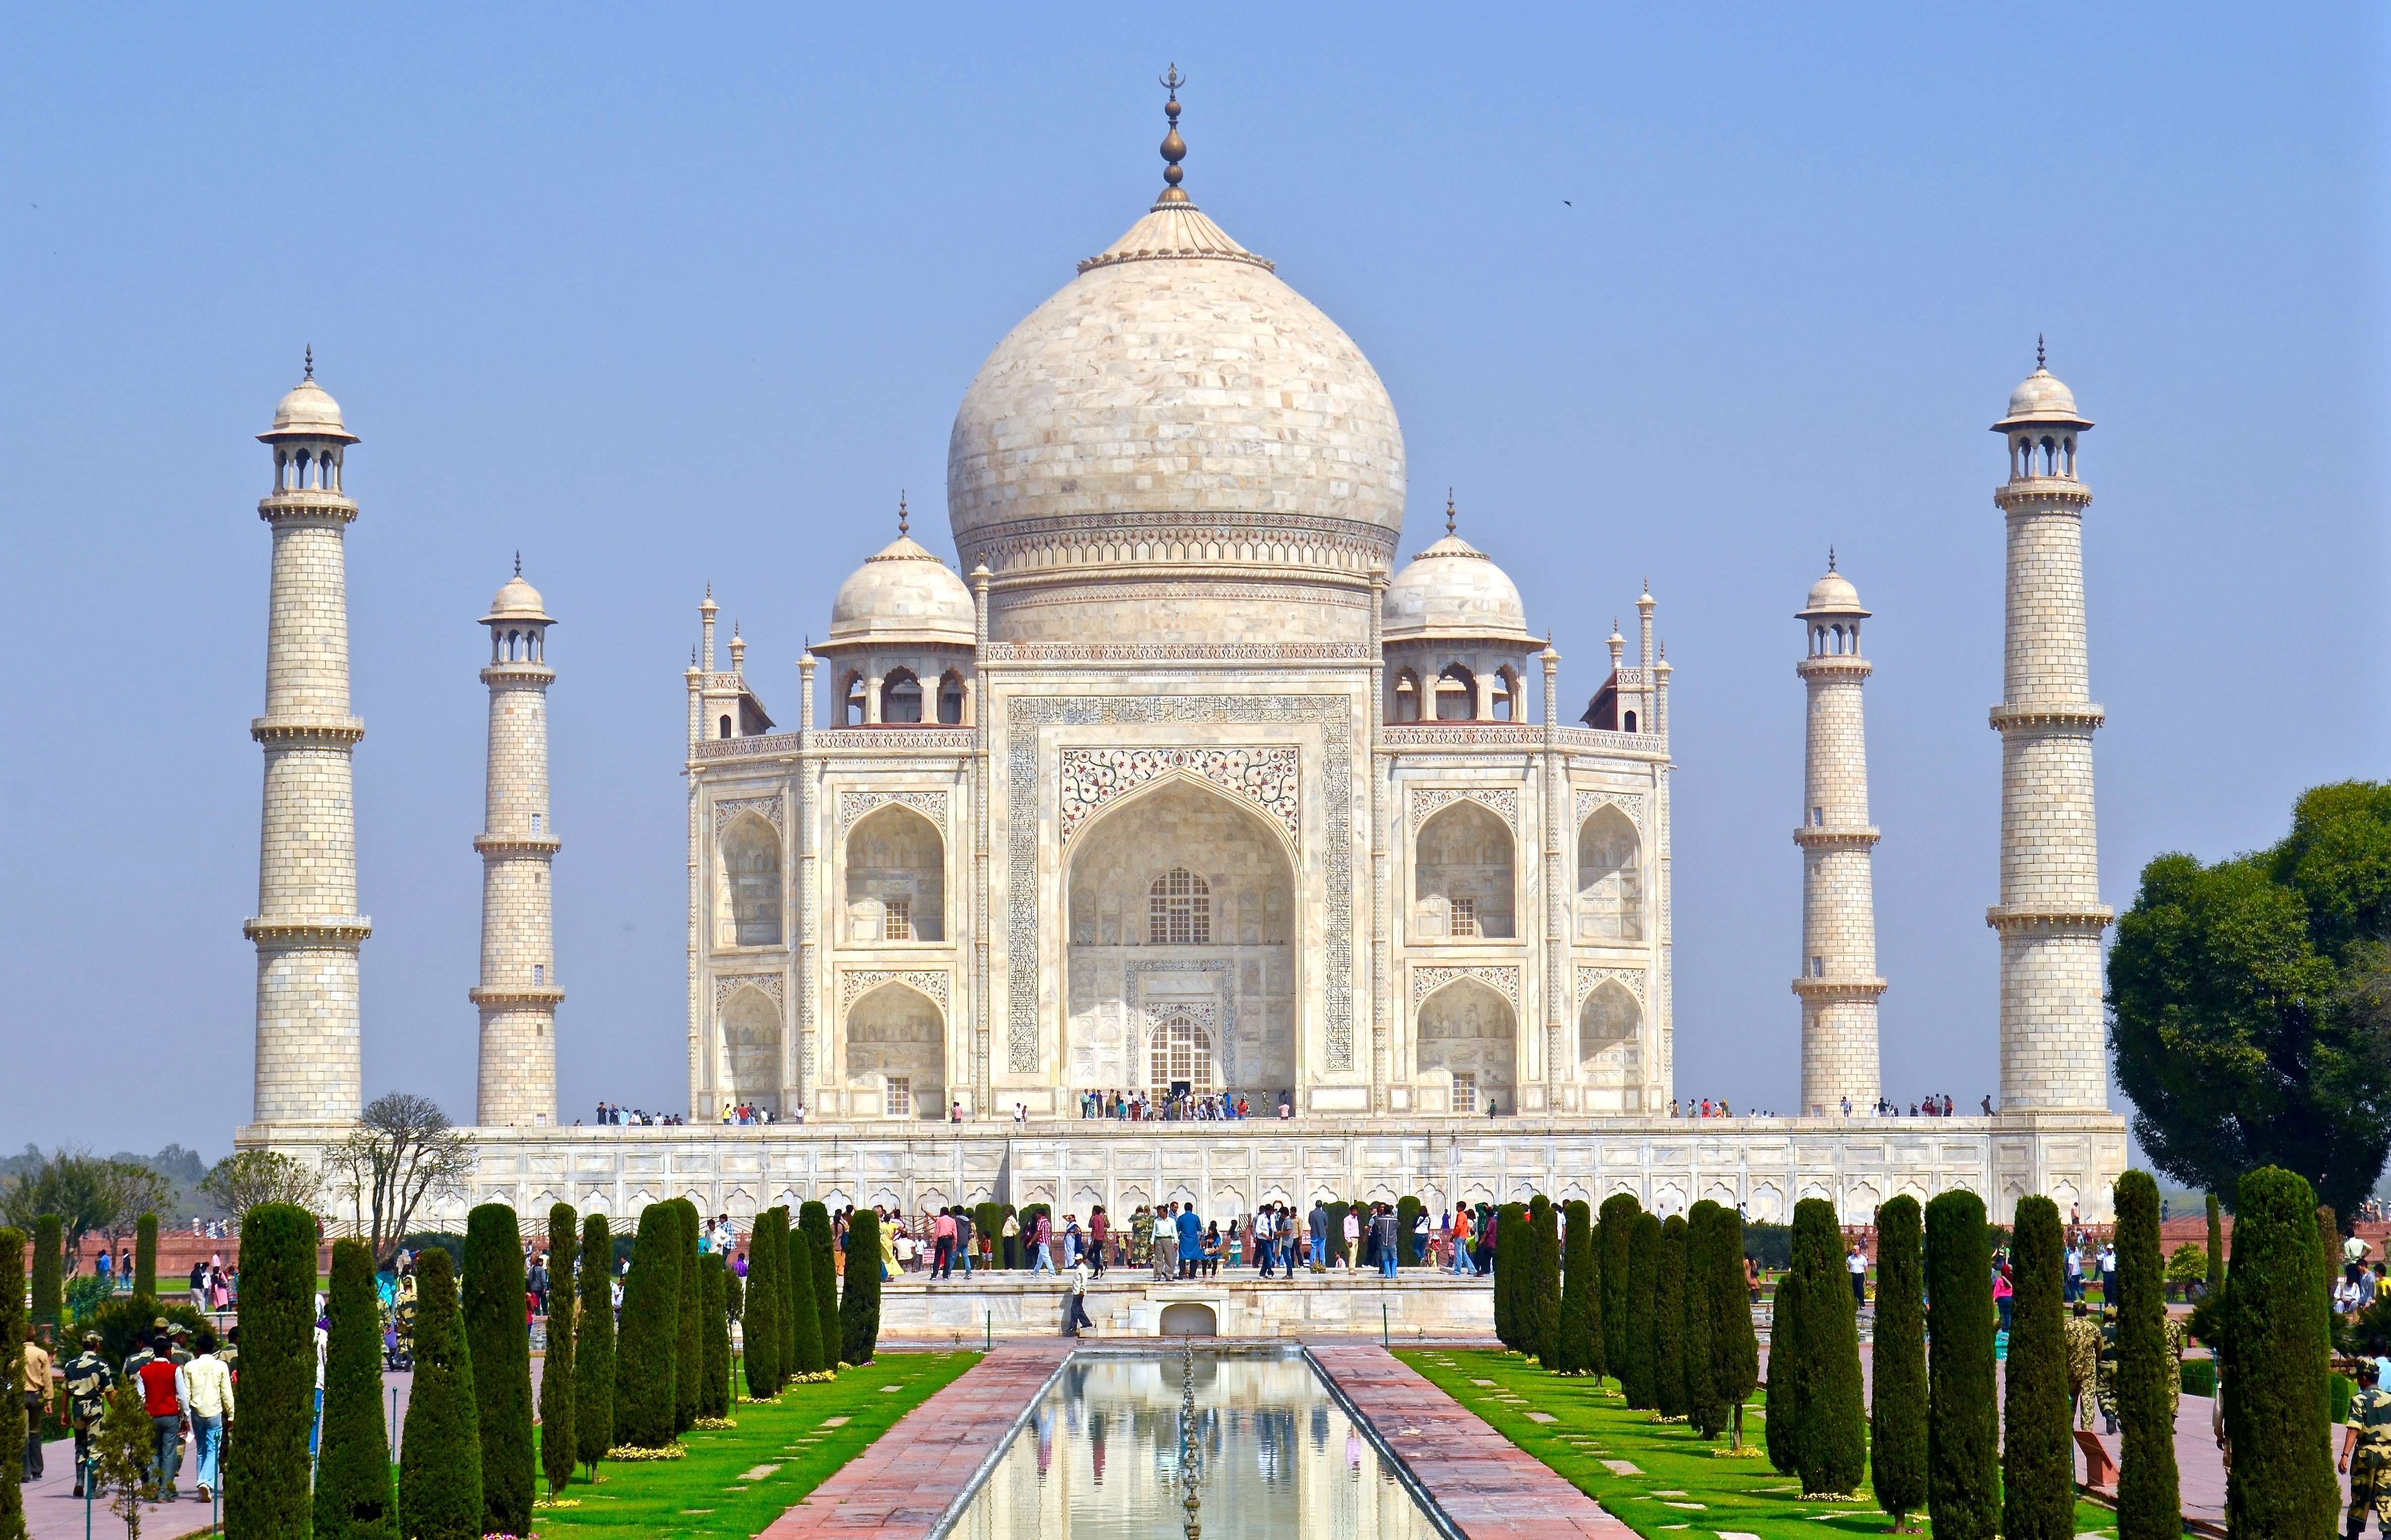 Grand Monuments & Imperial Cities in India 1